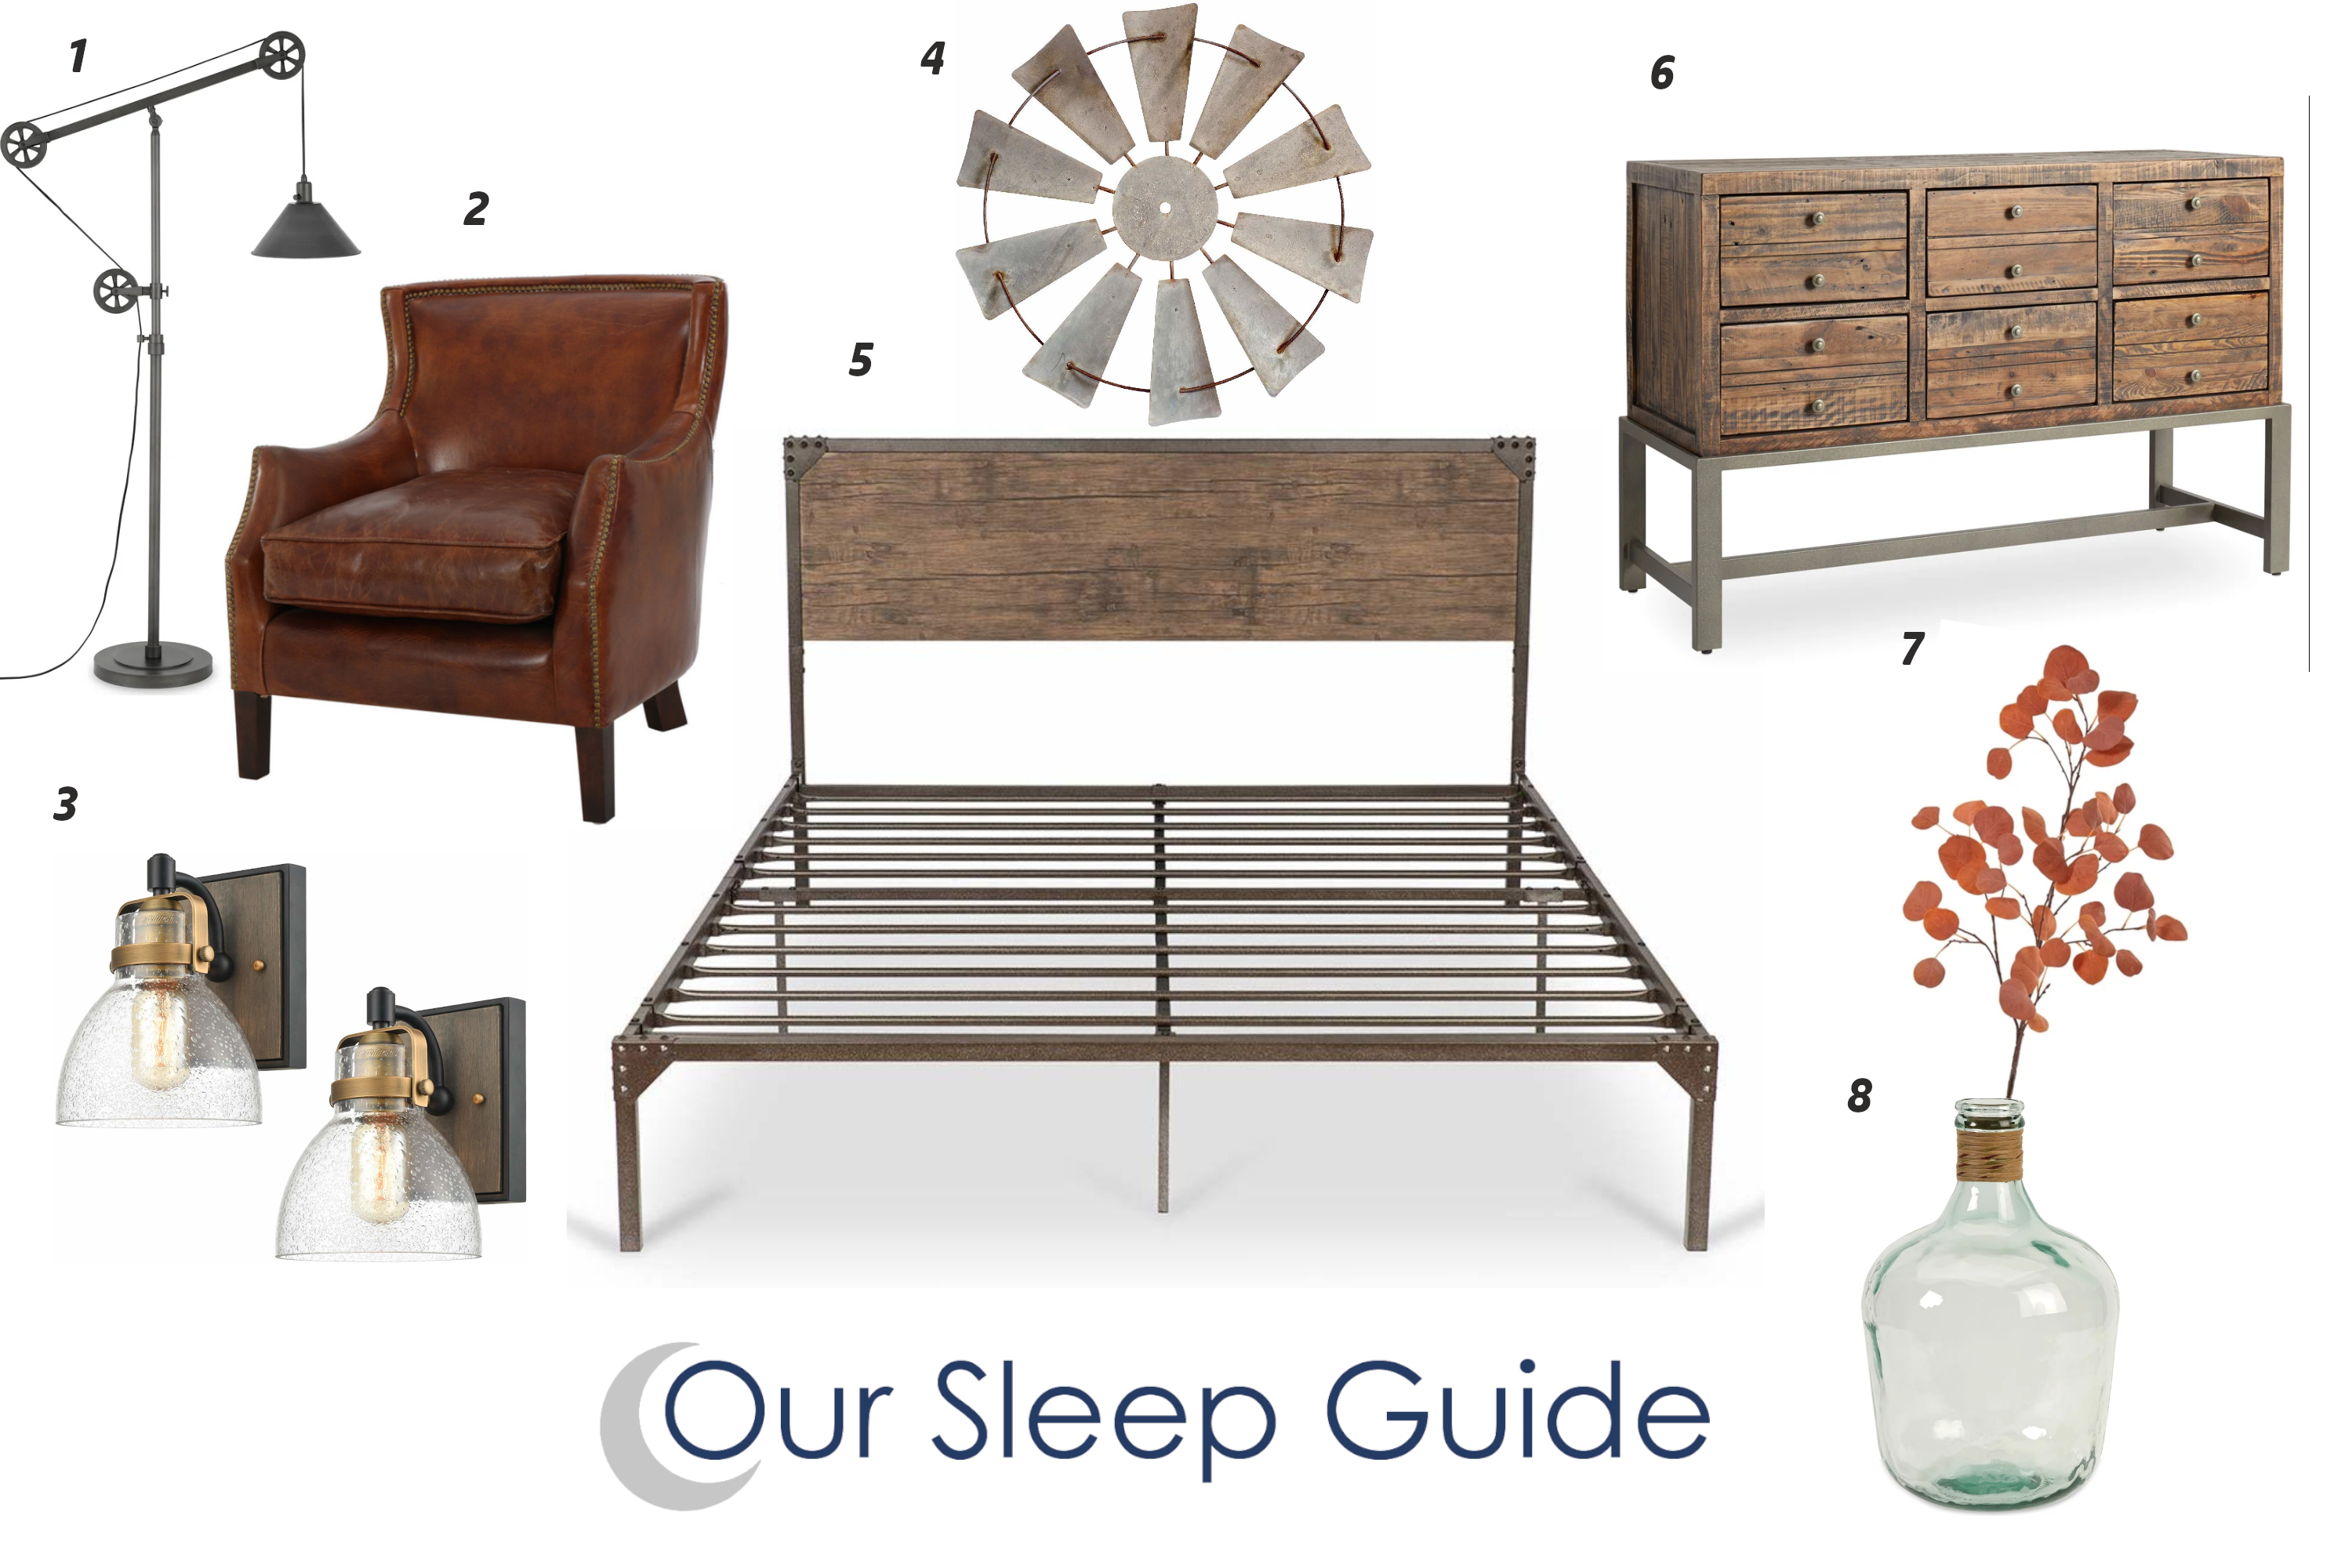 our sleep guide rustic bedroom decor